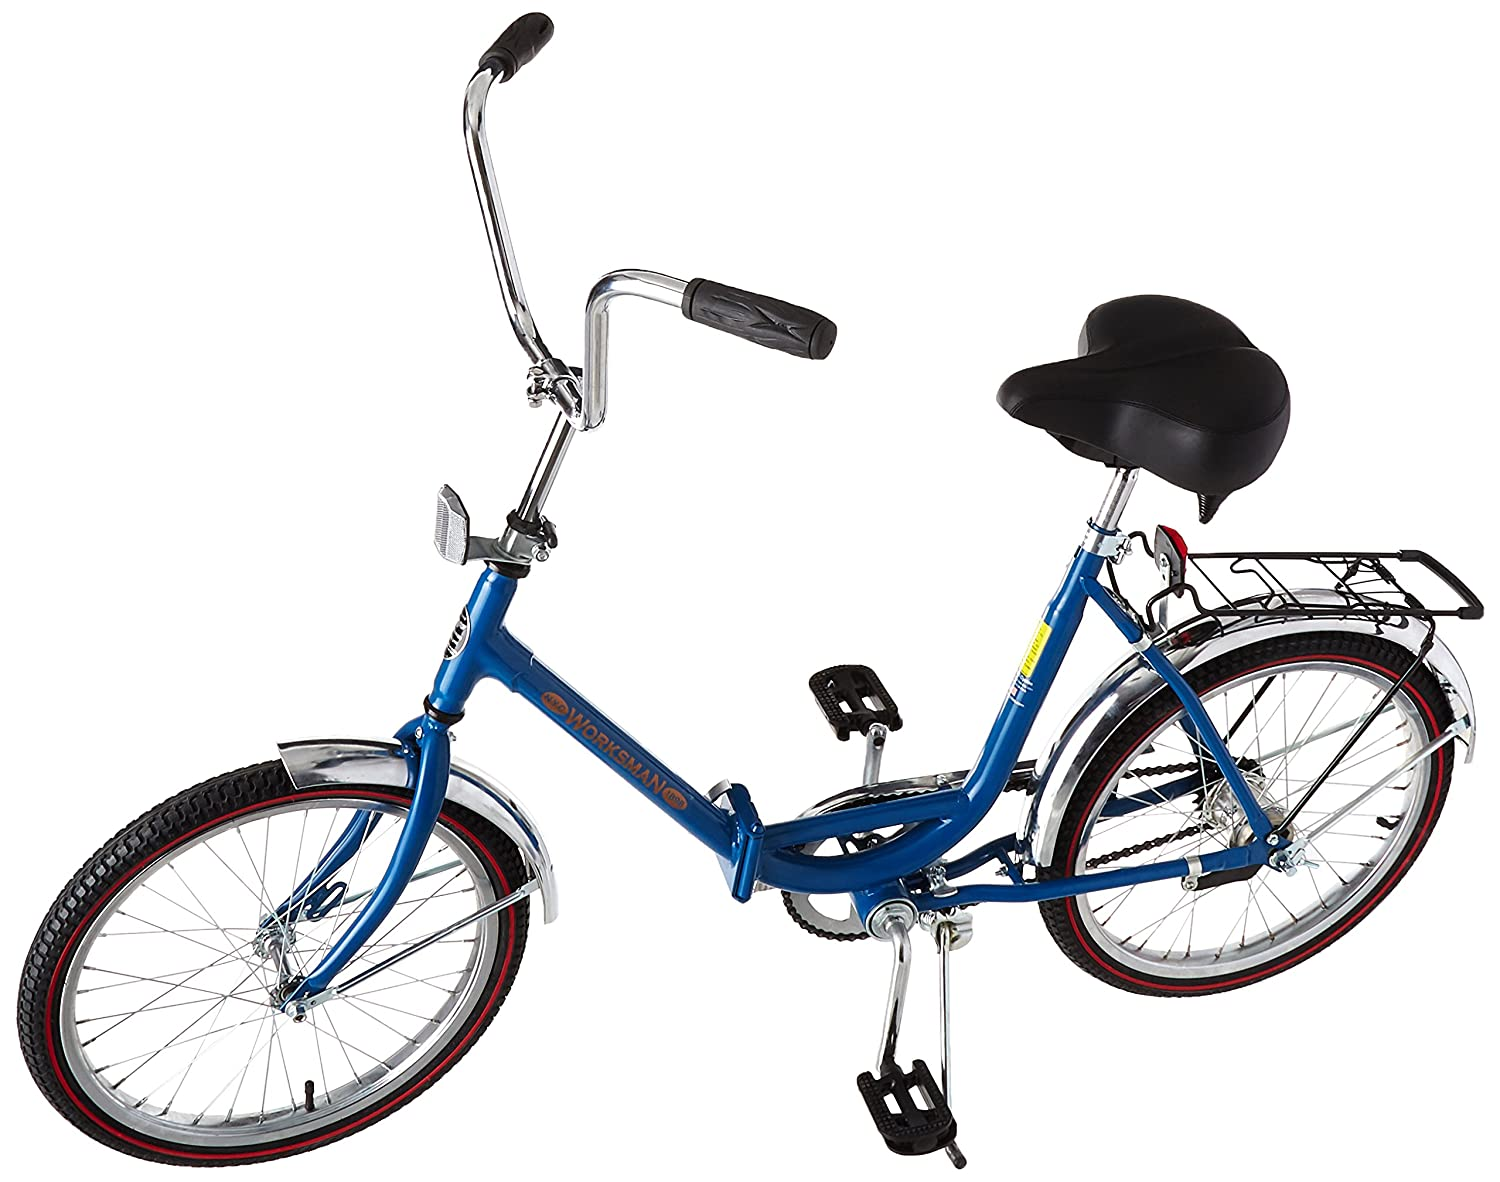 Amazon.com: Worksman Duo - Bicicleta plegable de 2 ...